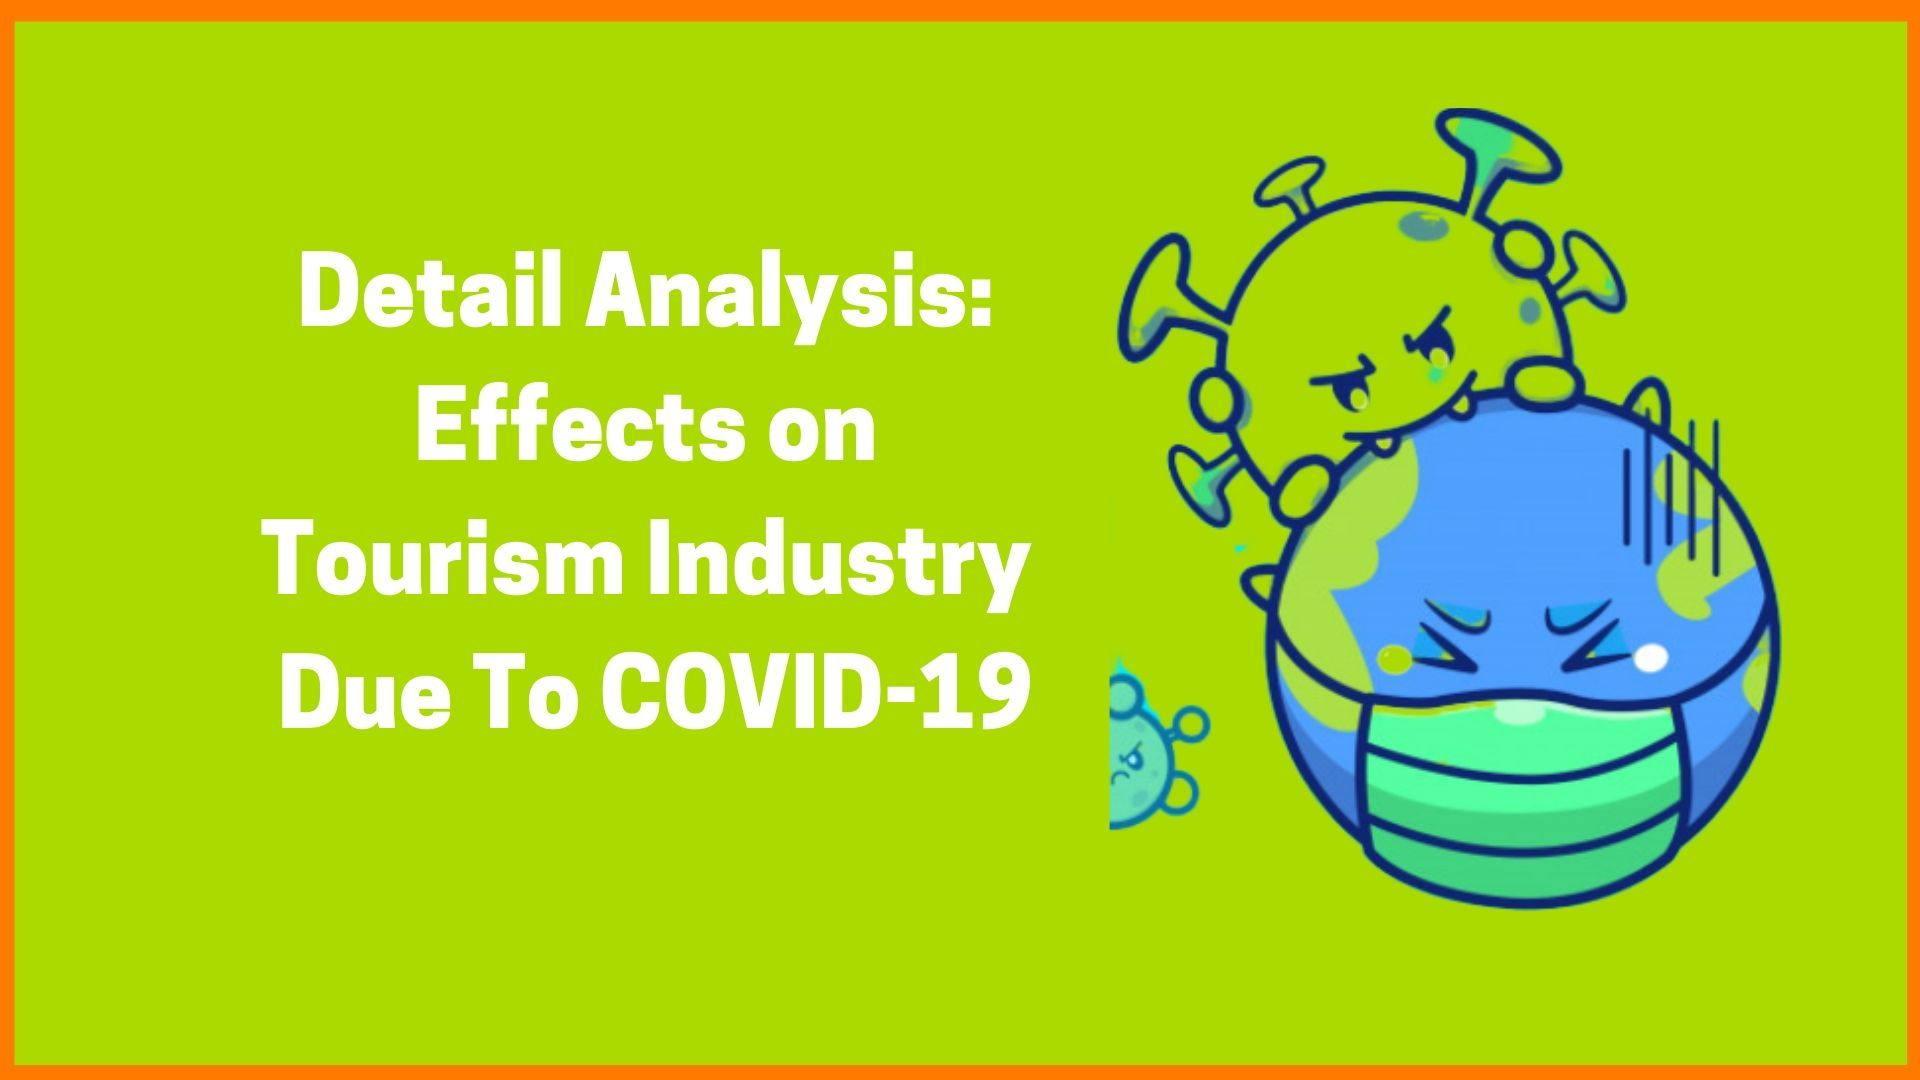 Detail Analysis: Effects on Tourism Industry Due To COVID-19